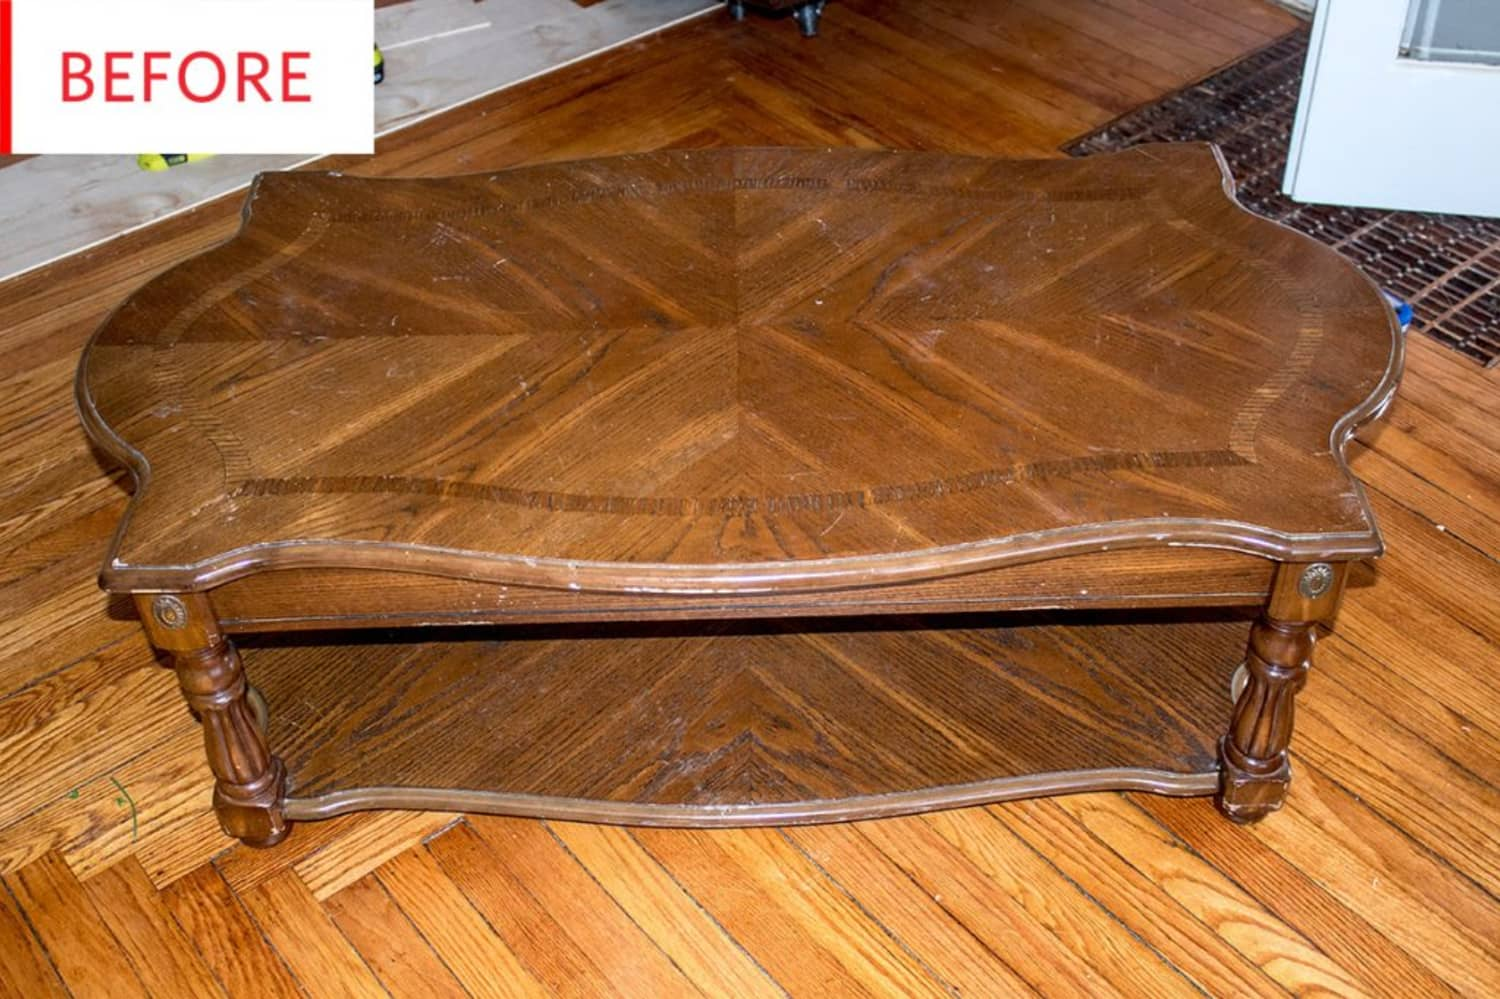 Before & After: This Thrift Store Coffee Table Gets Secret Storage